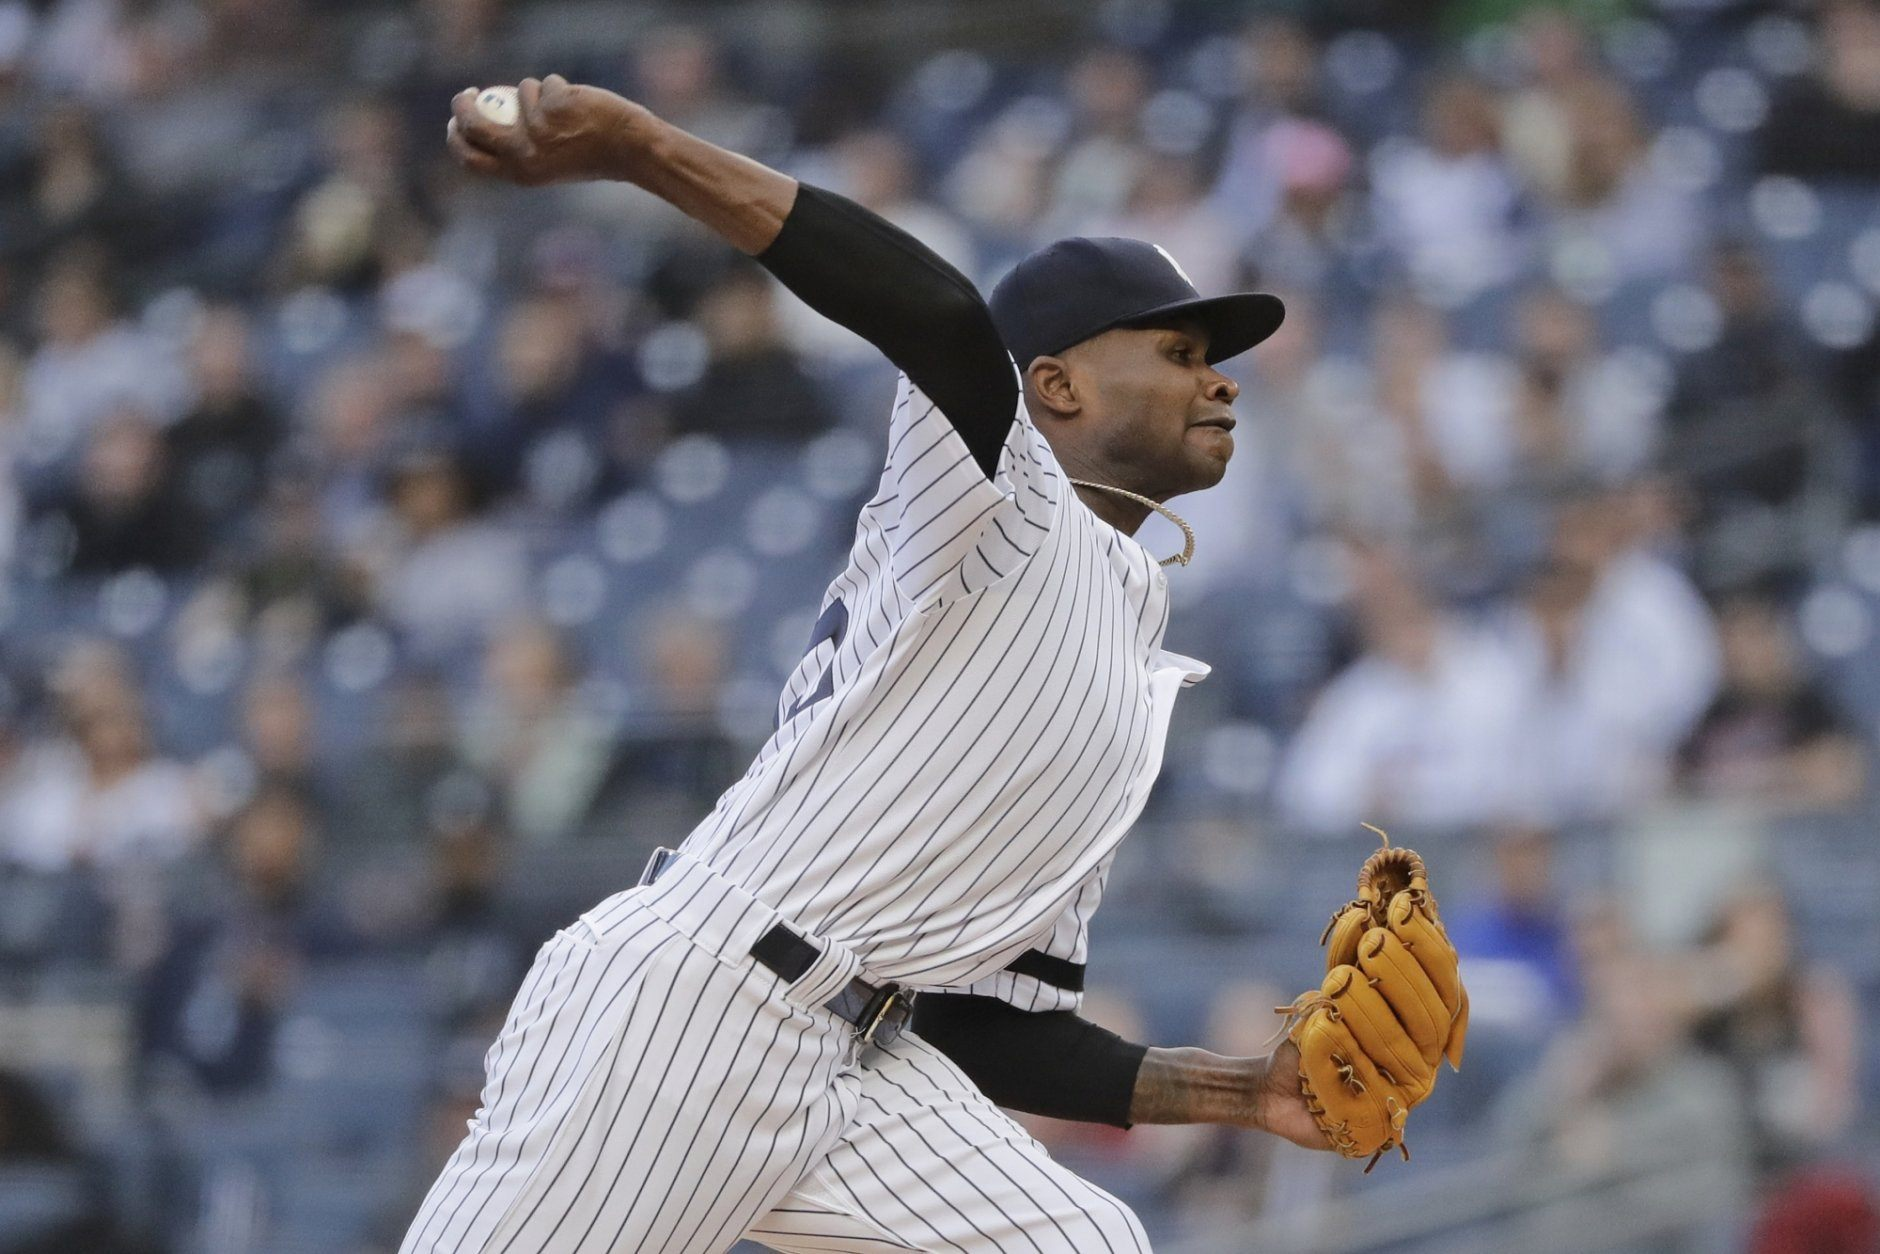 New York Yankees' Domingo German delivers a pitch during the first inning in the second baseball game of the team's doubleheader against the Baltimore Orioles on Wednesday, May 15, 2019, in New York. (AP Photo/Frank Franklin II)